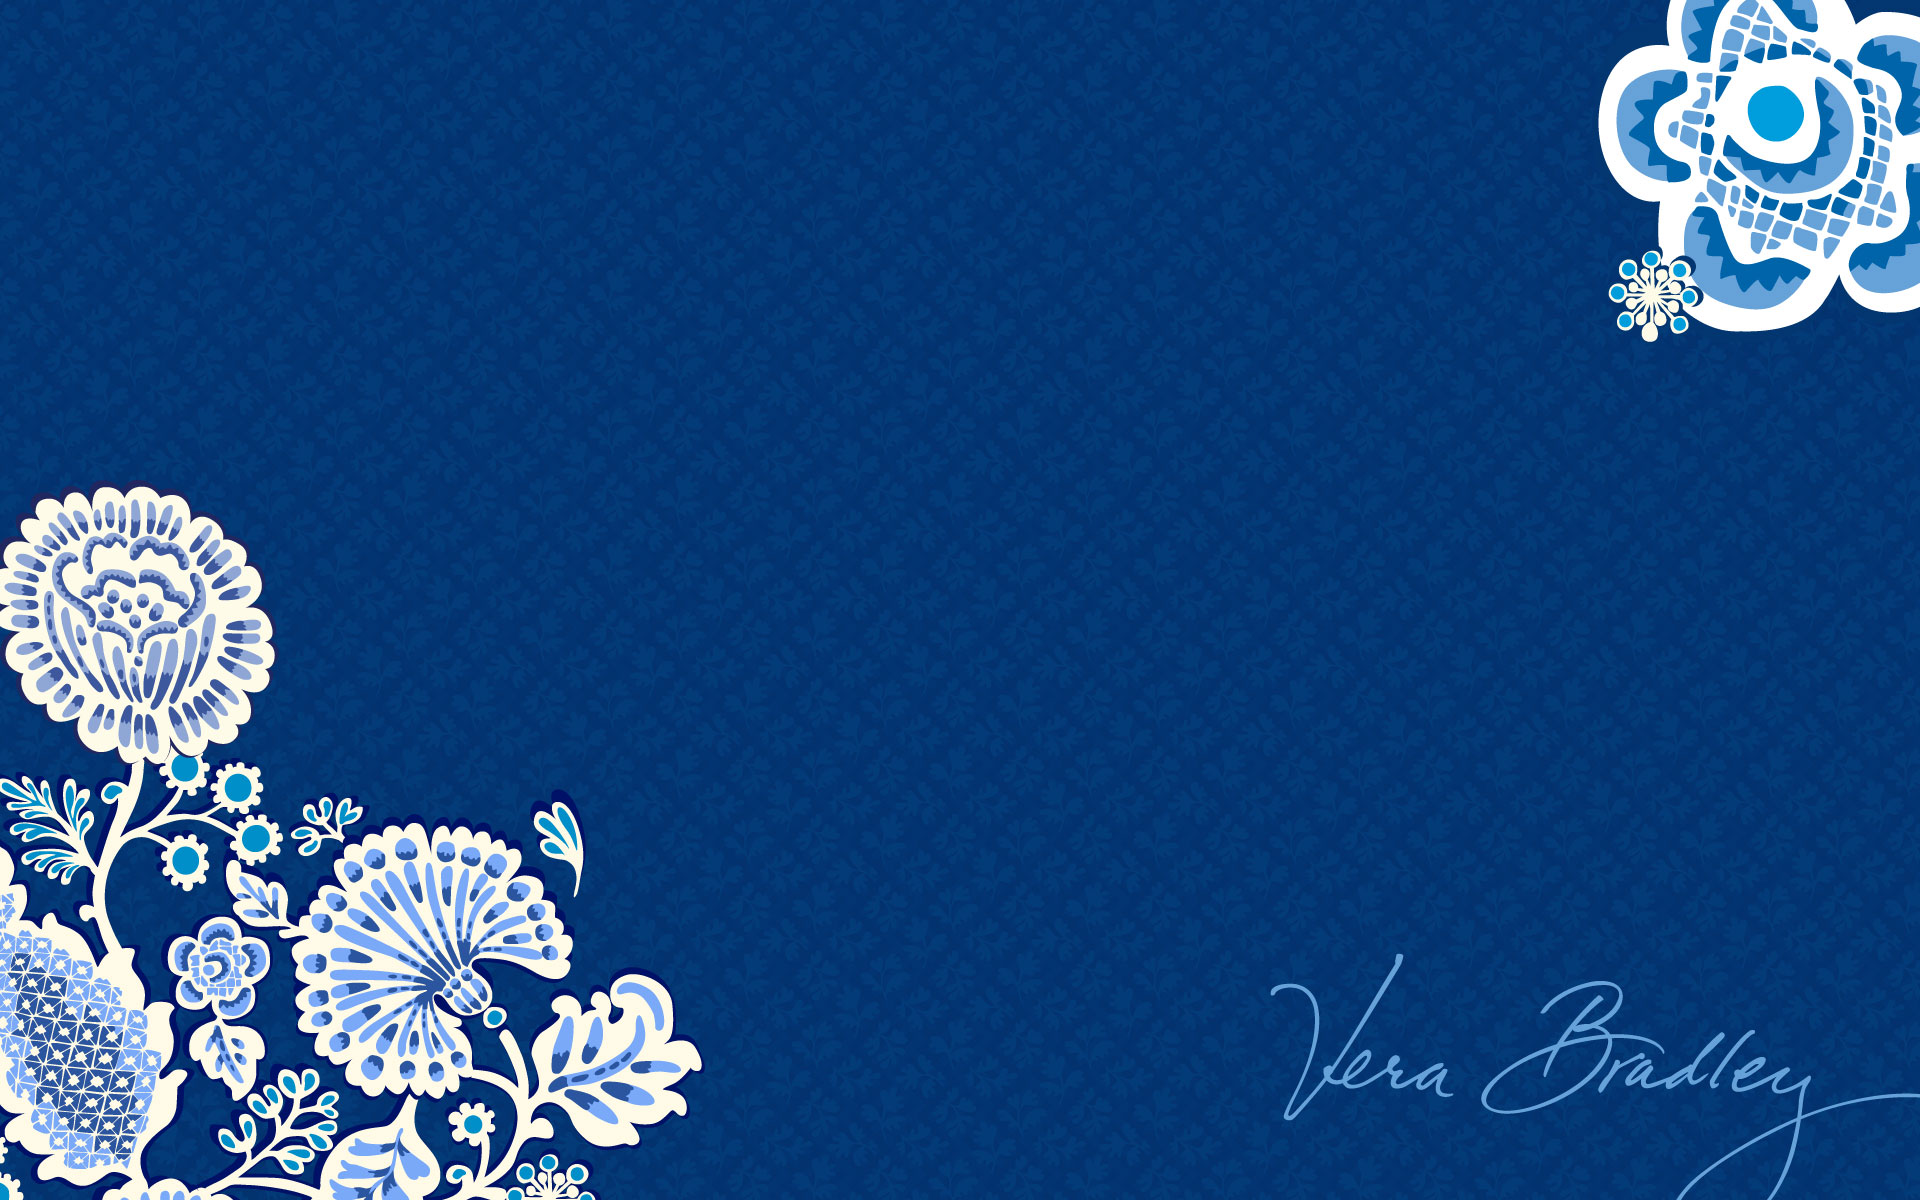 Vb Wallpapers Vera Bradley Wallpaper 35126645 Fanpop